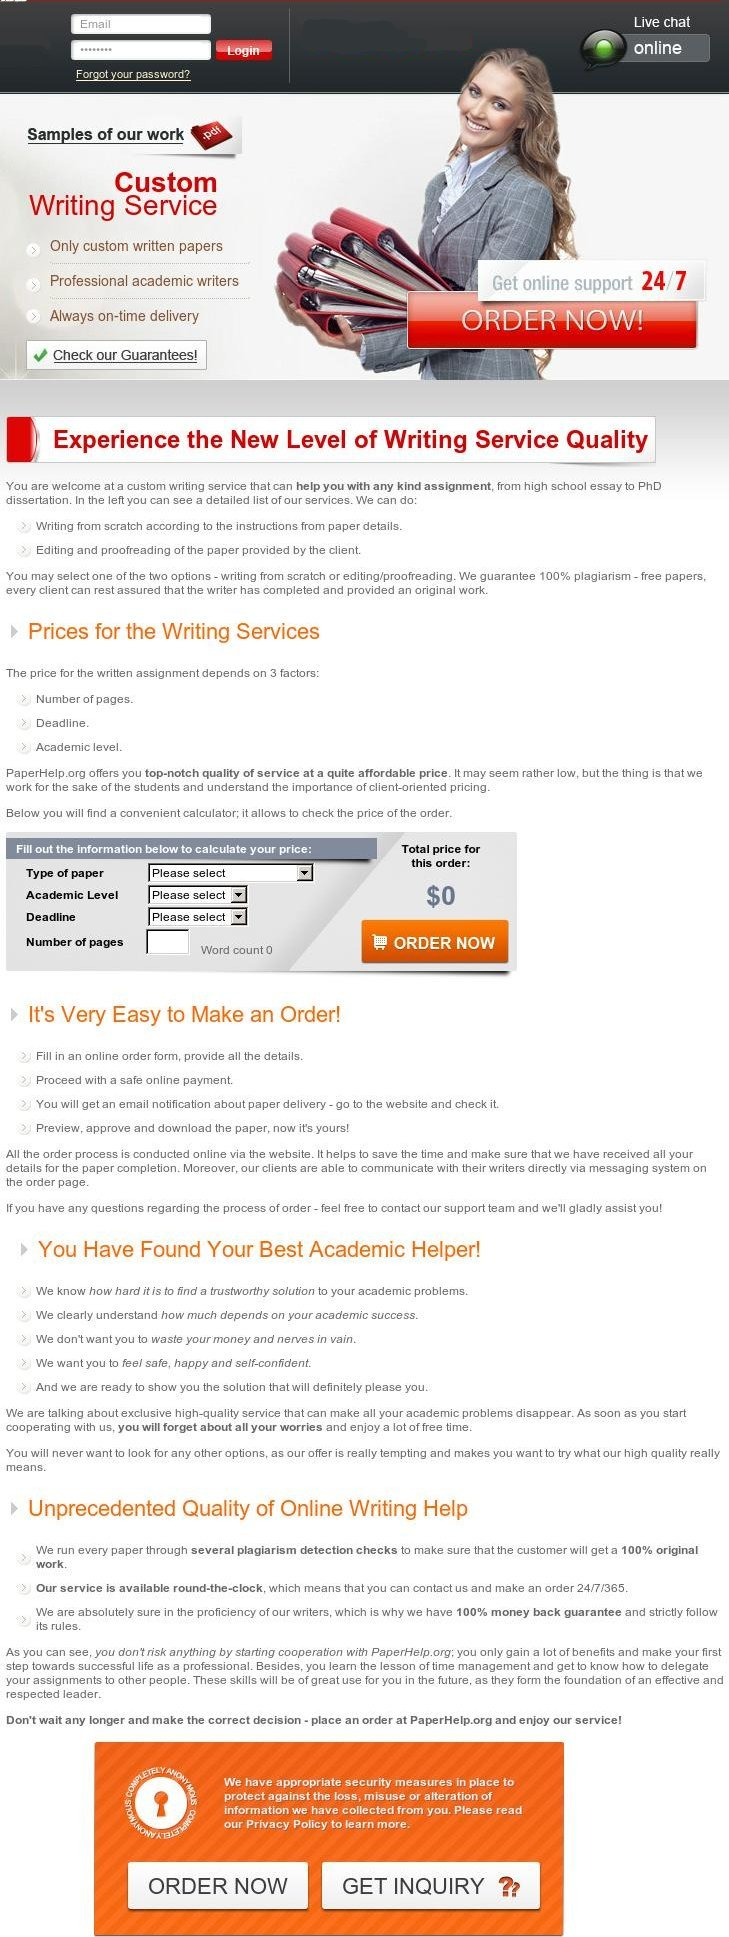 Creative writing outliner software : Online Writing Lab ...